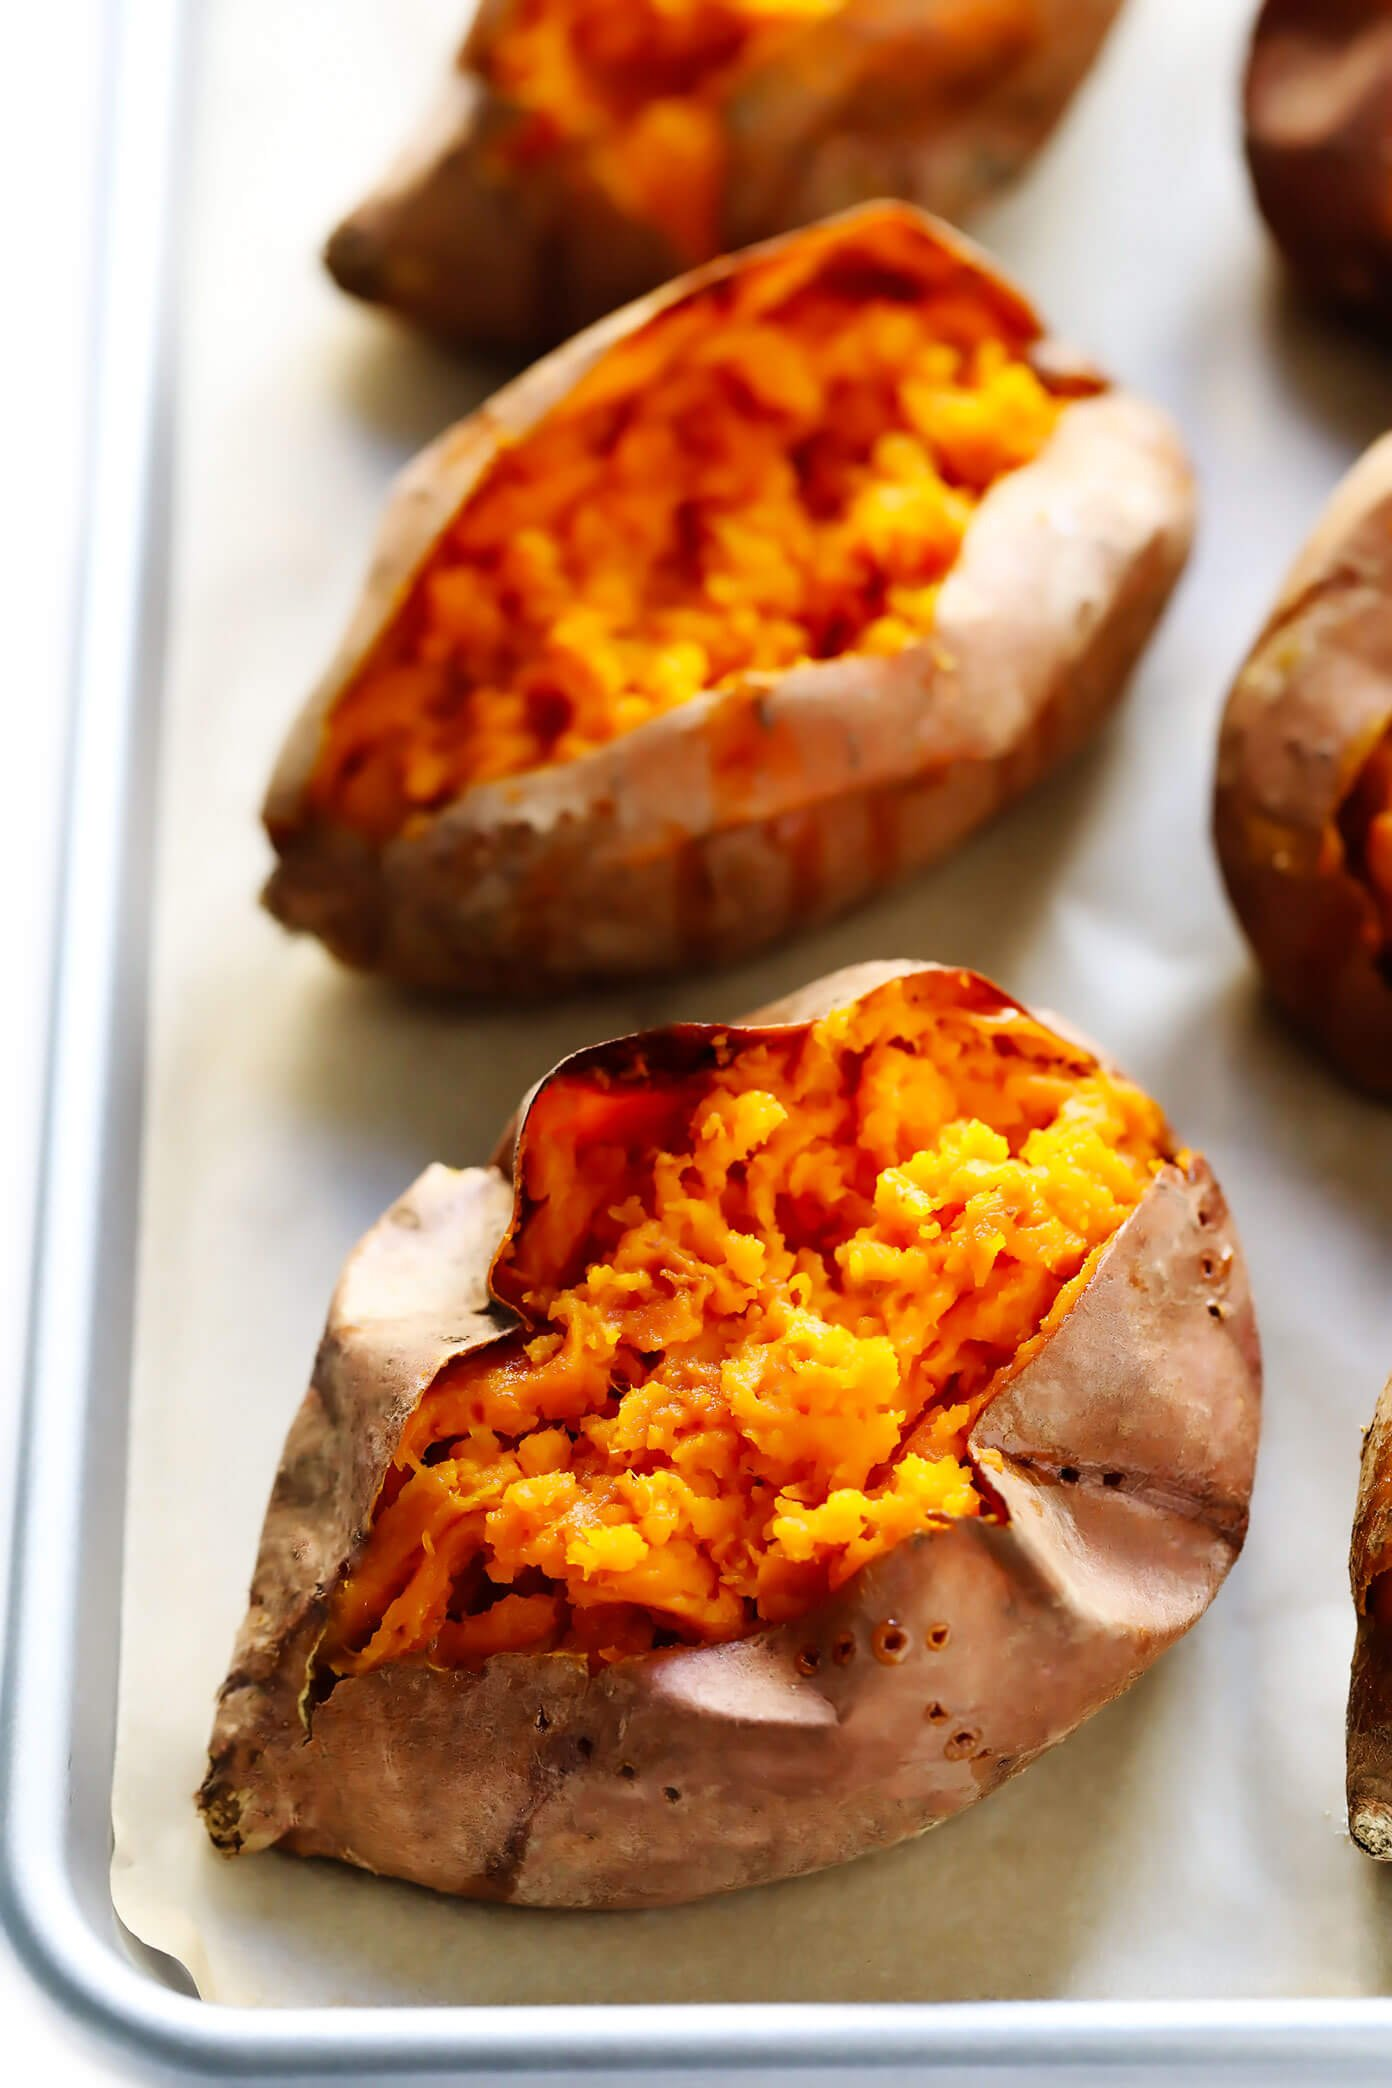 Plain baked sweet potatoes on a baking sheet